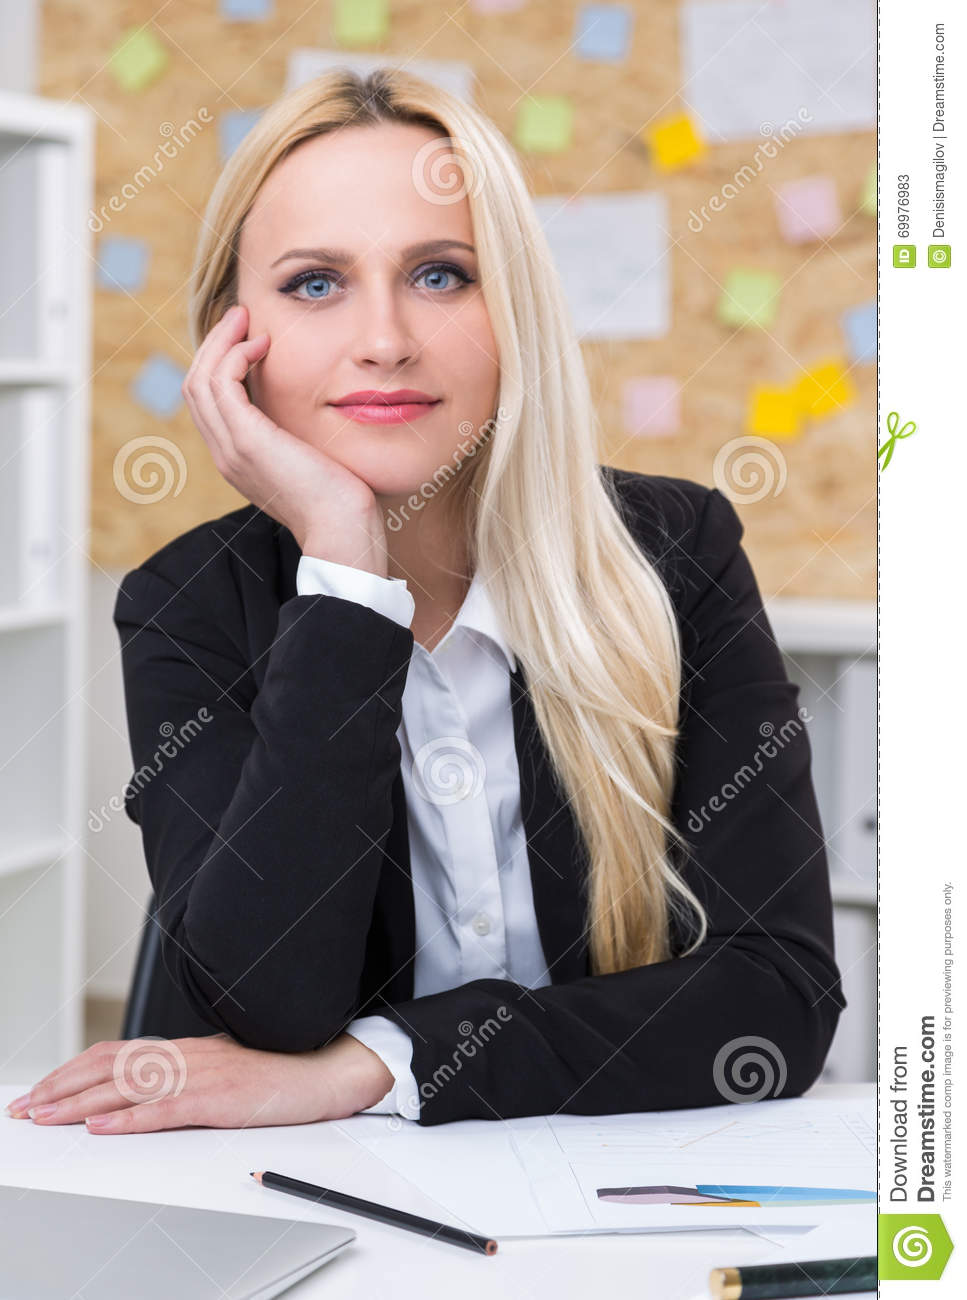 Head Leaning On Hand Stock Photo Image 69976983